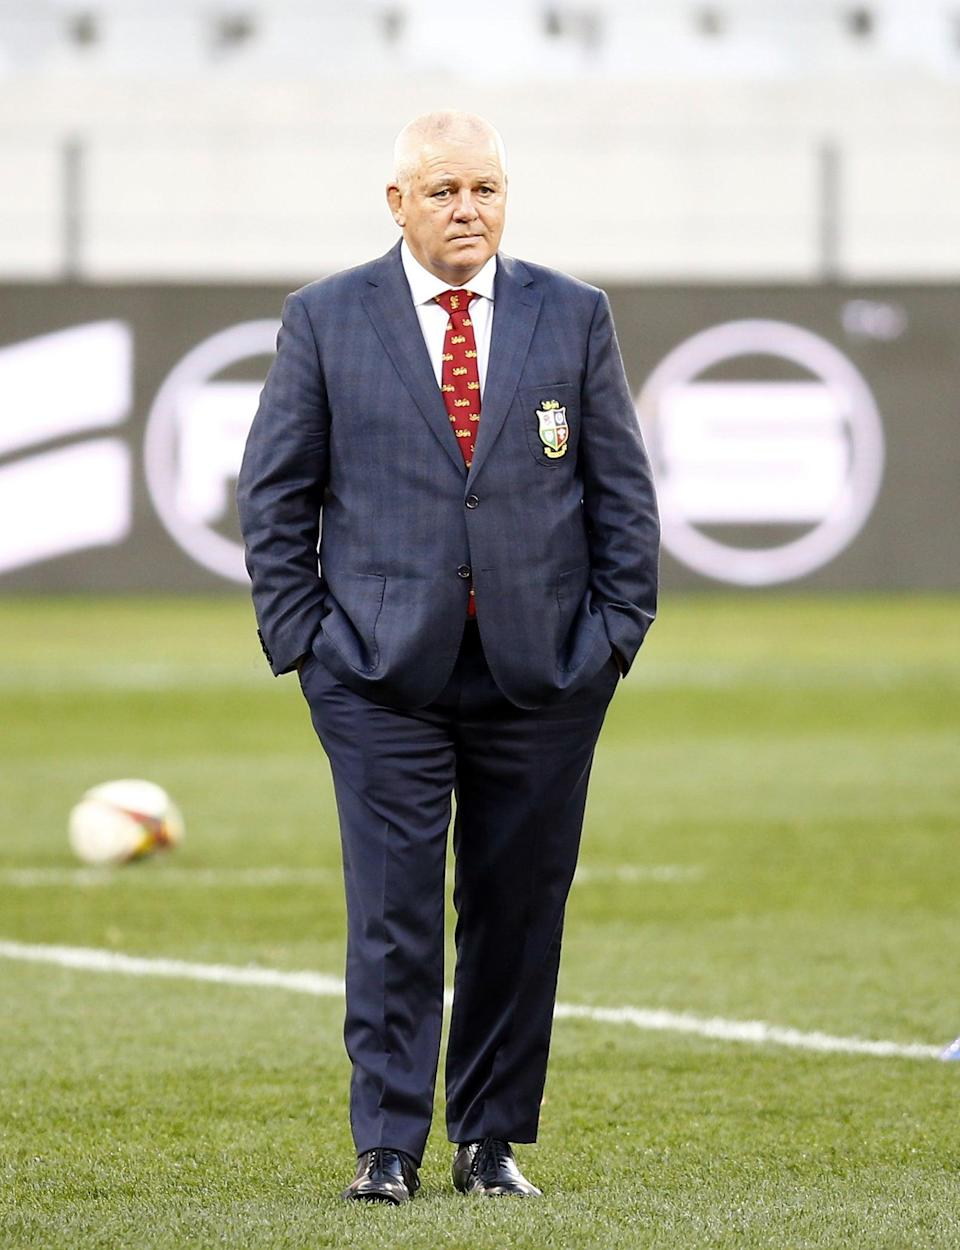 Warren Gatland, pictured, has led the Lions on three successive tours (Steve Haag) (PA Wire)